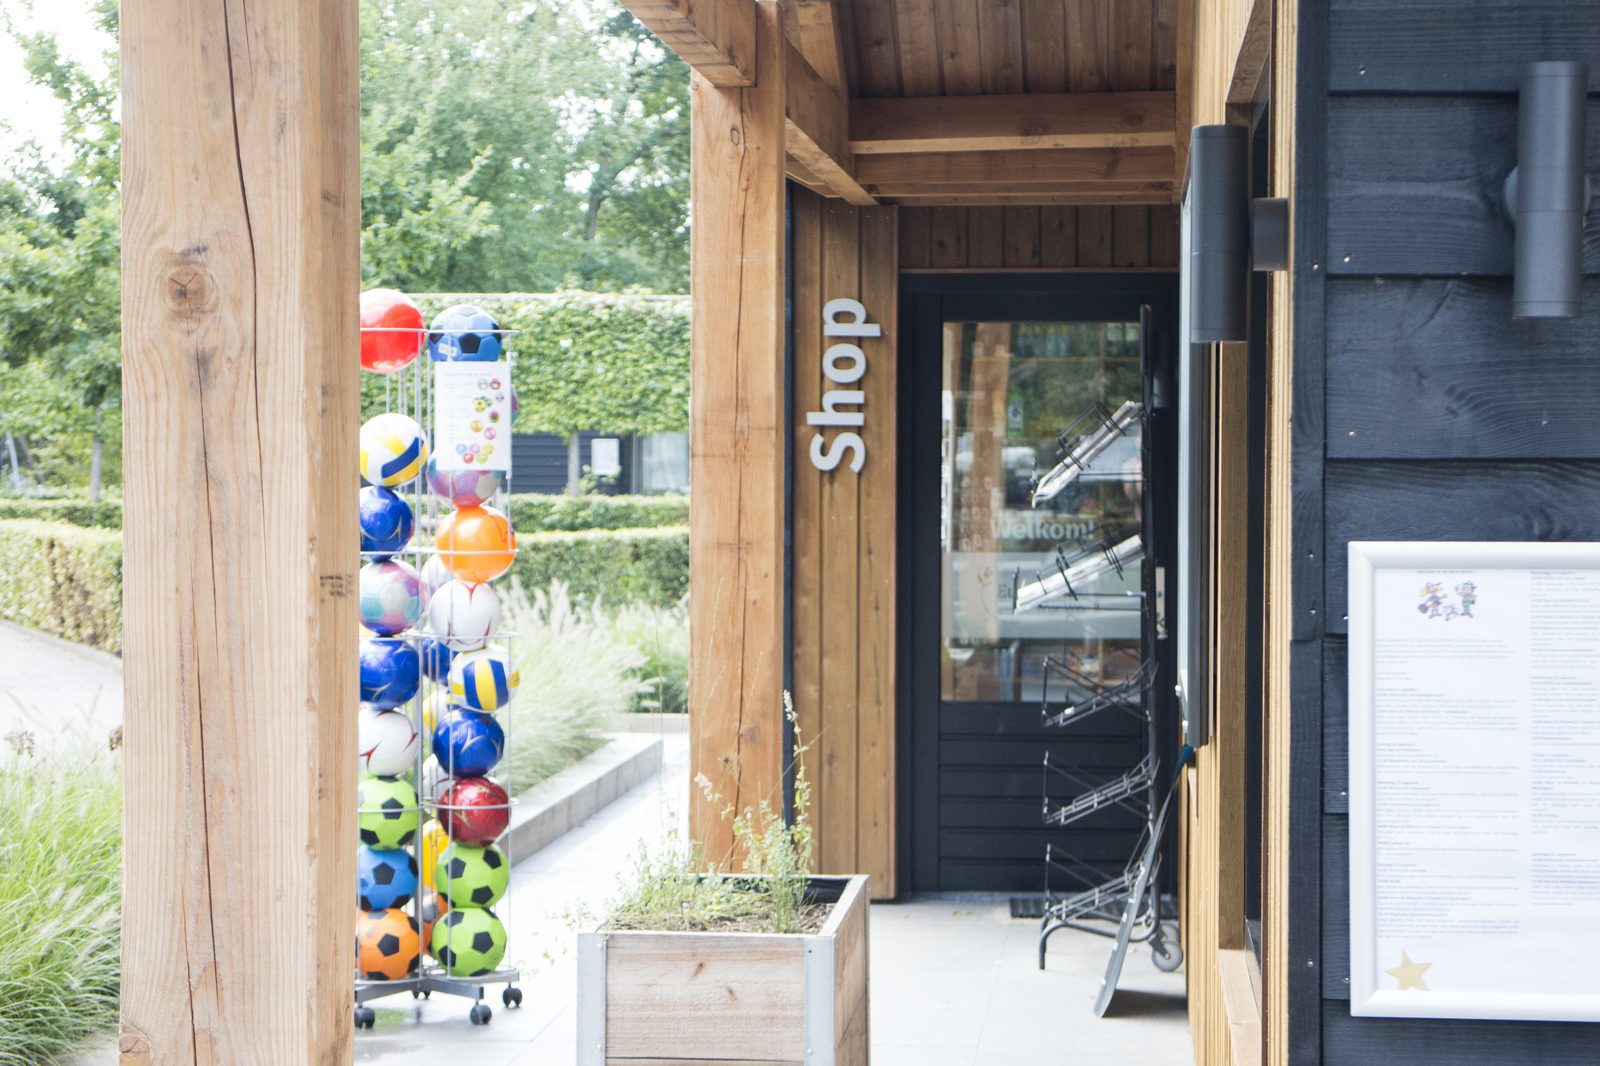 EuroParcs Resort De Wije Werelt facility breakfast shop entrance